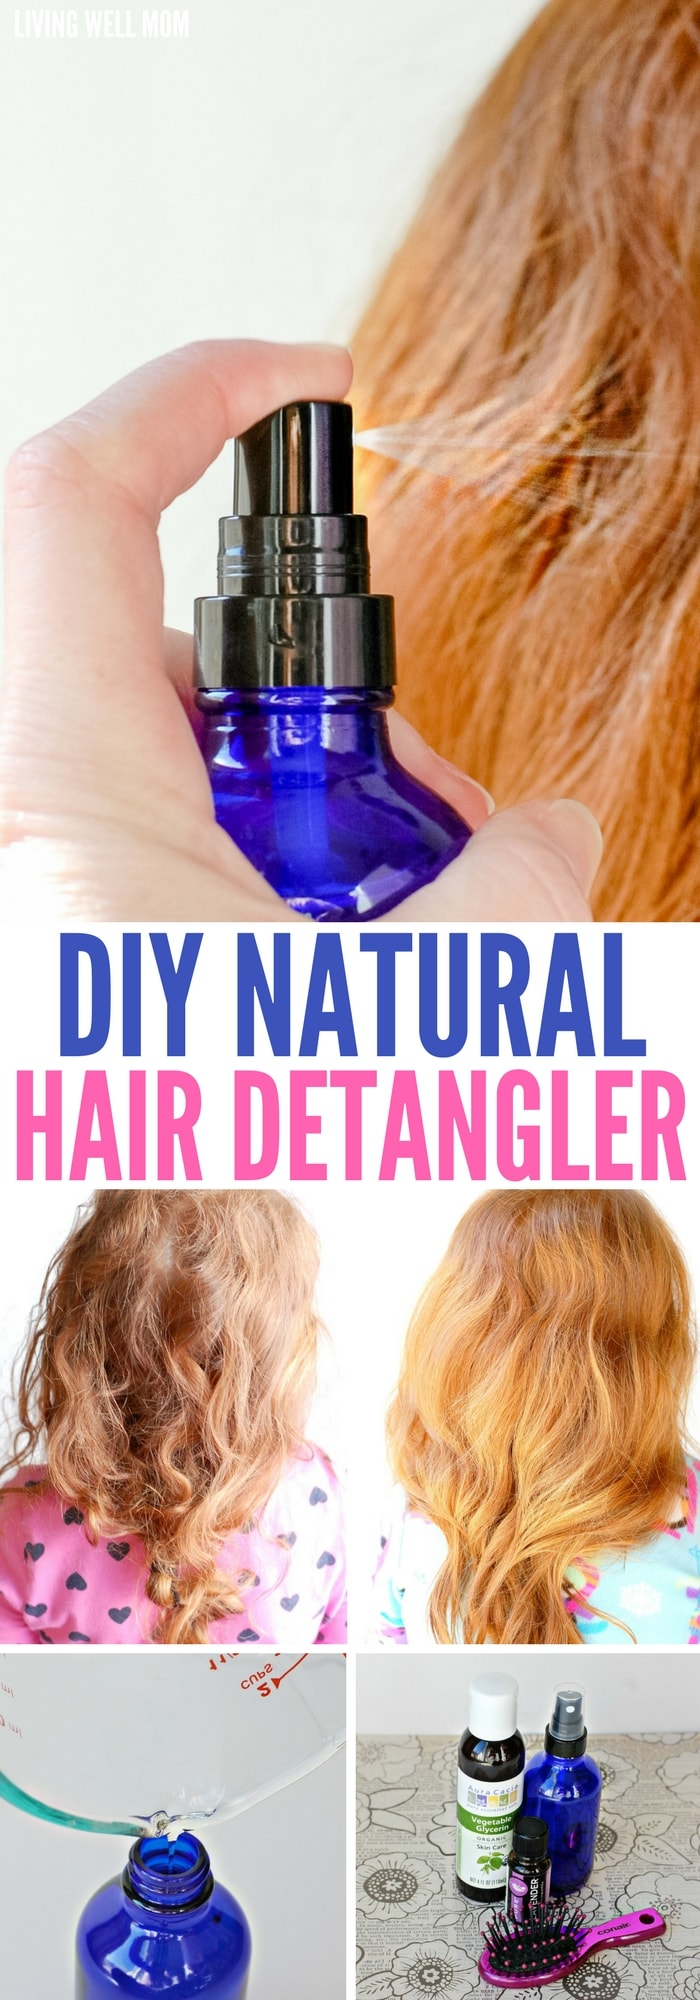 How To Make Homemade Detangler For Natural Hair